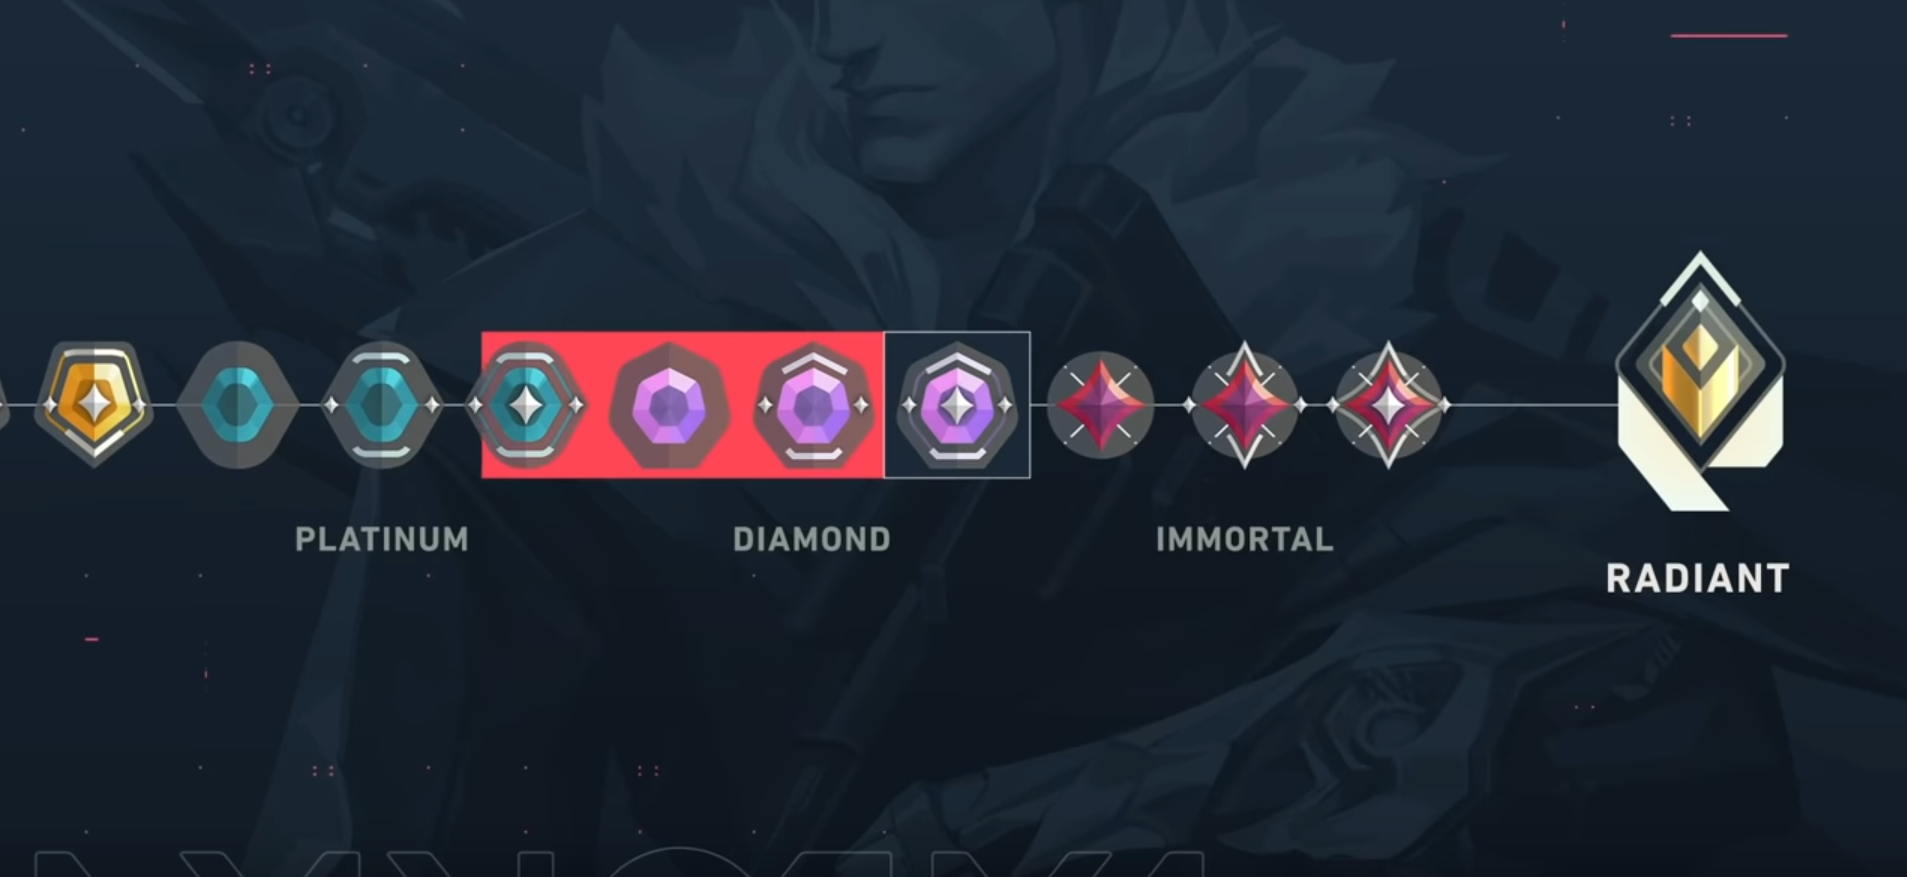 Rank graph showing Platinum 3, Diamond 1, Diamond 2, and Diamond 3 circled, and Immortal 1-3 not circled